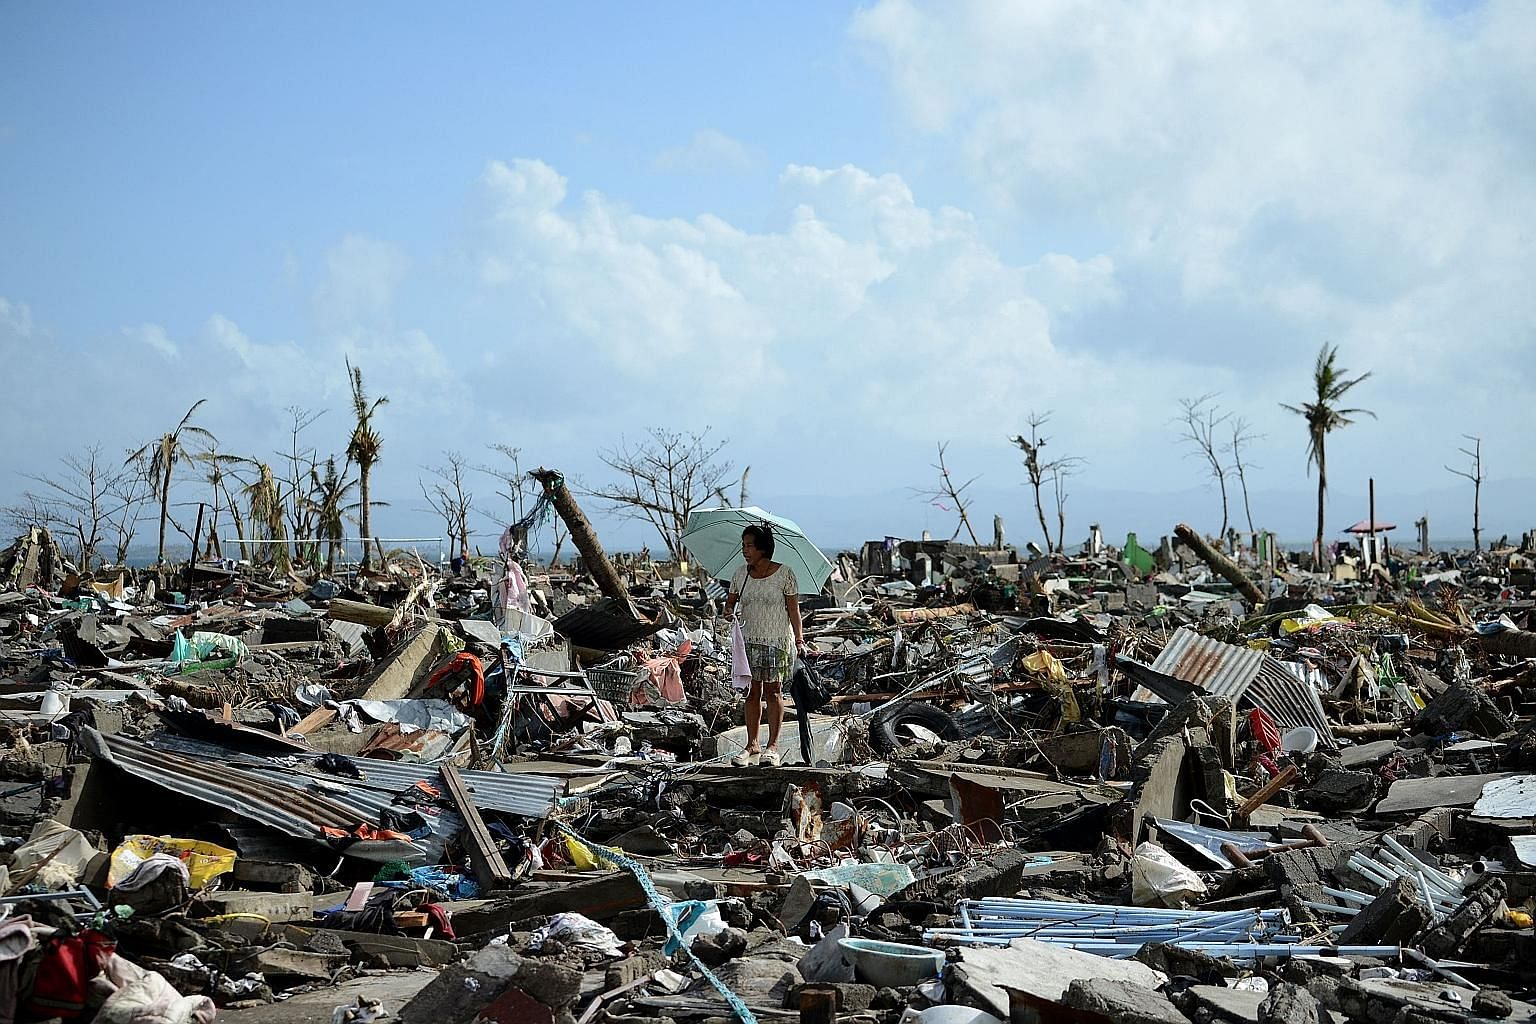 The aftermath of Super Typhoon Haiyan in Tacloban, in 2013, which left more than 7,000 people dead or missing across the central Philippines. The Permian-Triassic mass extinction on Earth that wiped out marine life millions of years ago may parallel